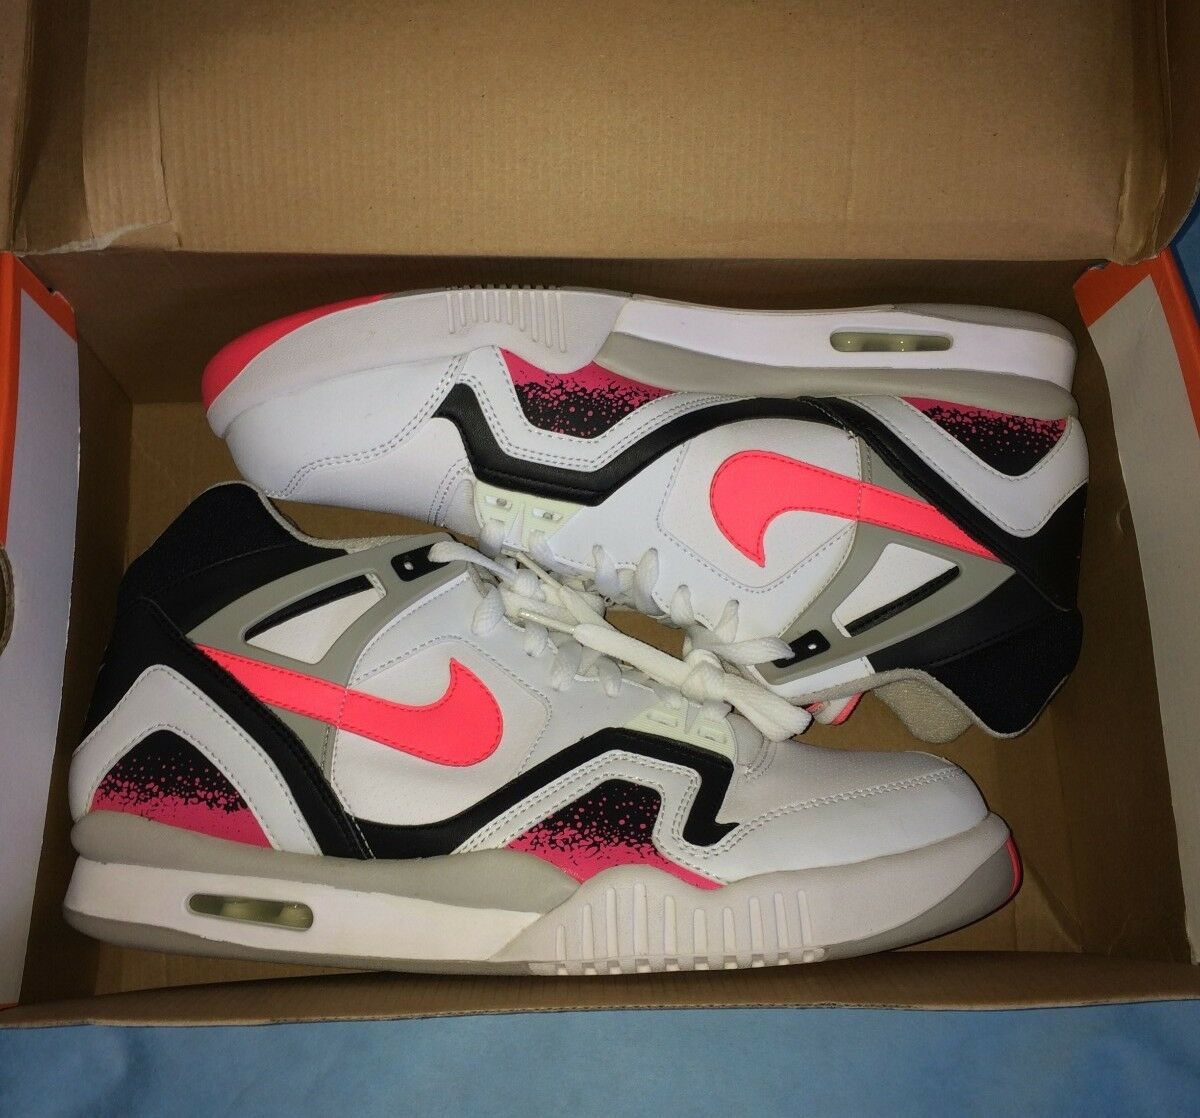 NIKE AIR TECH CHALLENGE II, AGASSI LAVA OG, SIZE 13, NEW IN BOX, RARE 2008 ISSUE